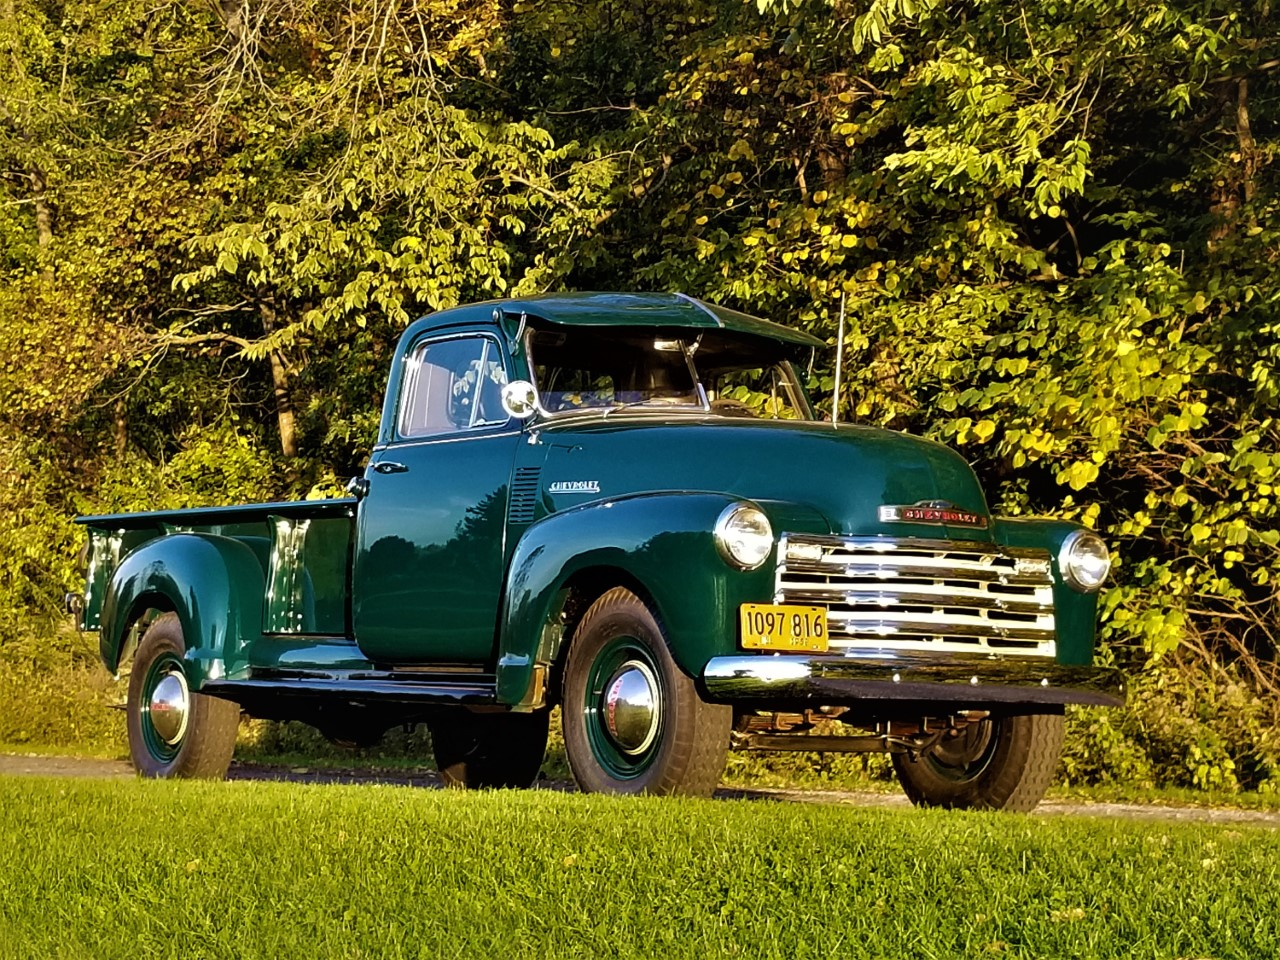 Marks-52-chevy-truck